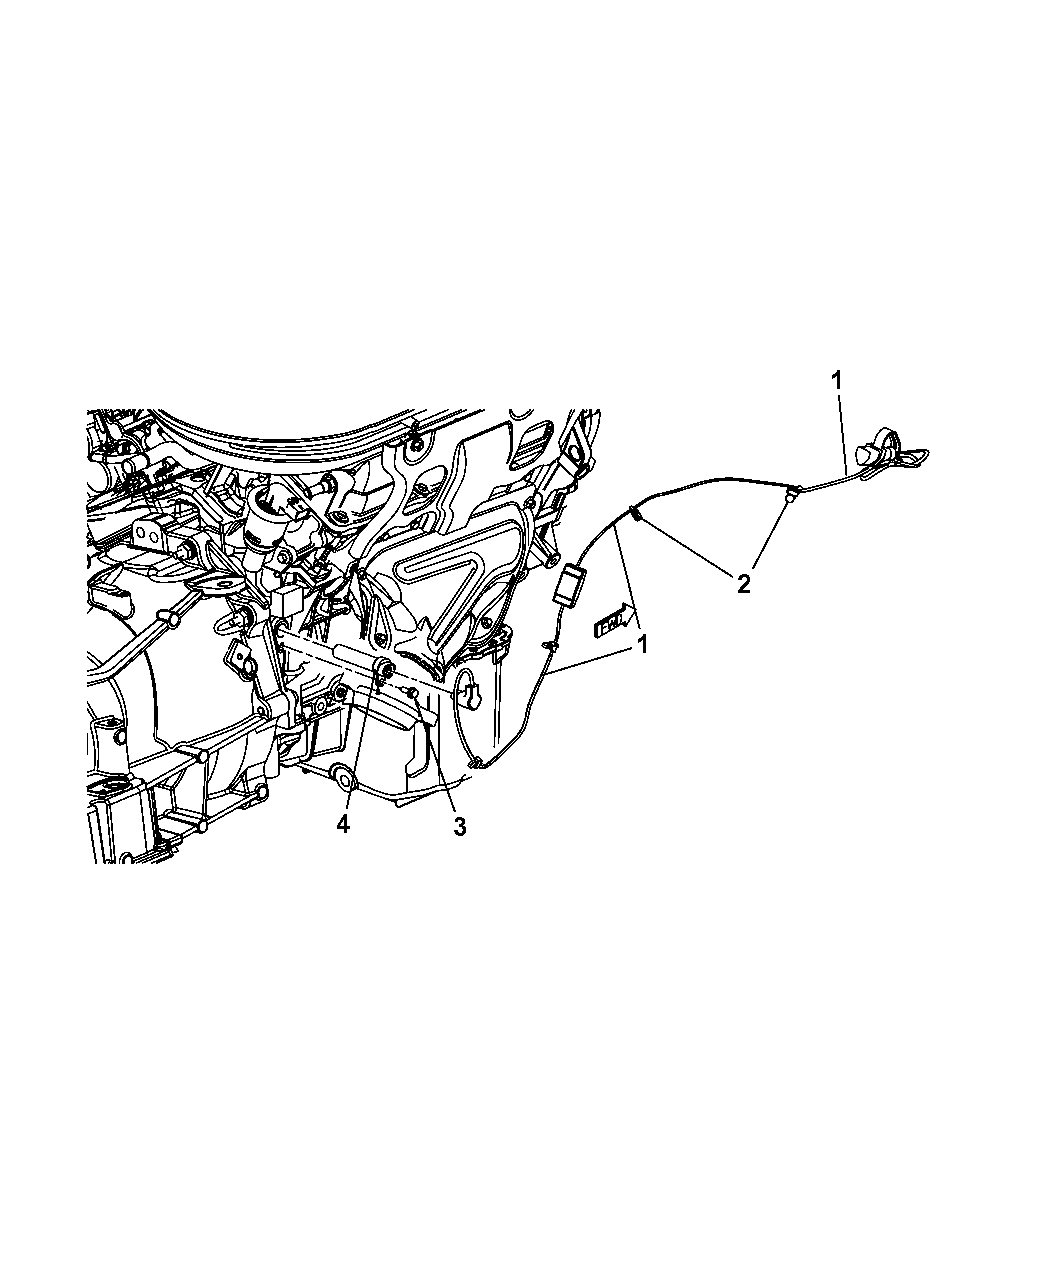 Roger Vivi Ersaks  2008 Dodge Avenger Engine Diagram